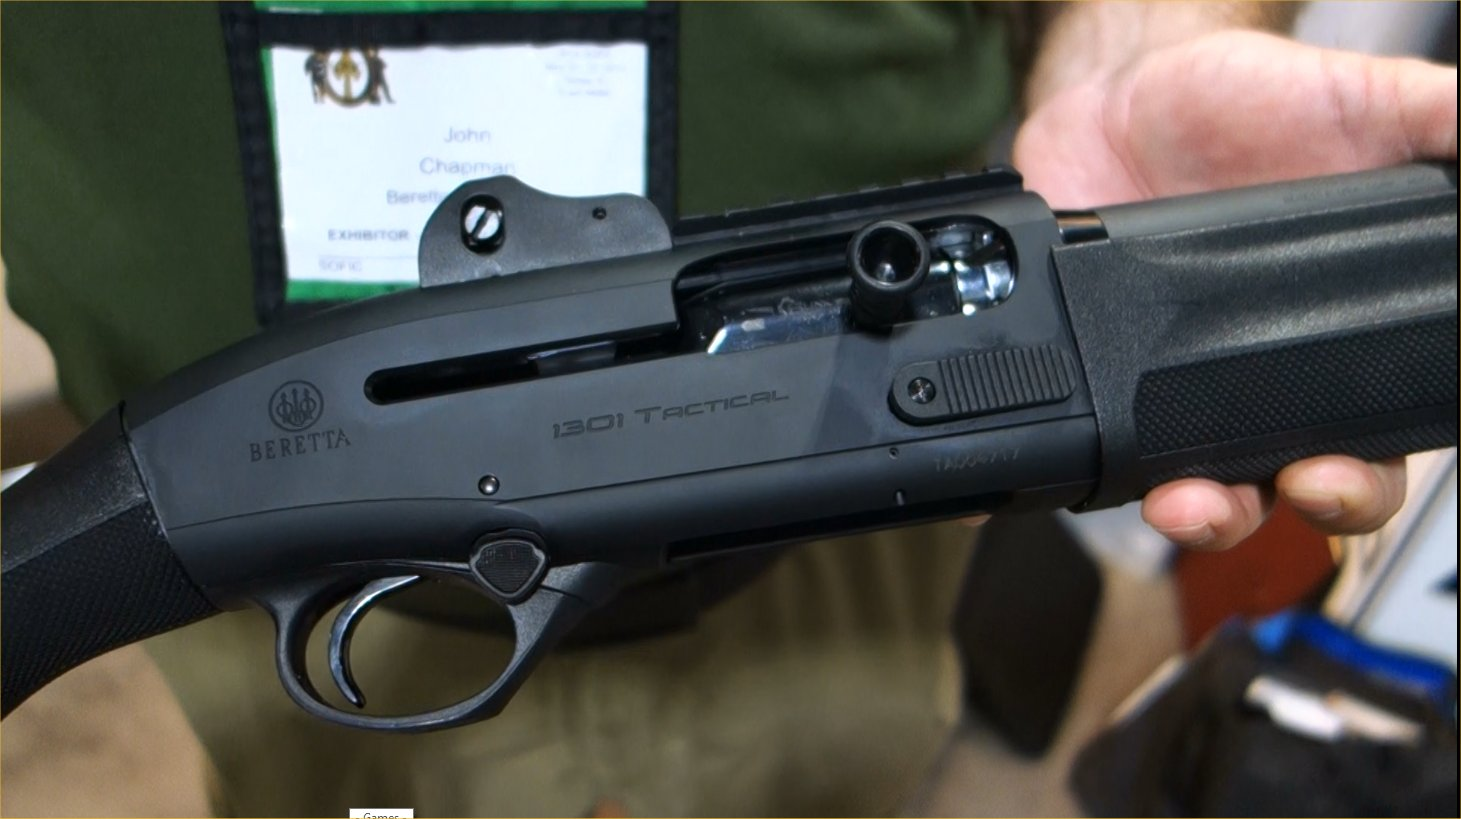 Beretta 1301 Tactical 12 Gauge Semi Auto Combat Tactical Shotgun John Chappie Chapman Beretta Defense Technologies BDT SOFIC 2014 David Crane DefenseReview.com DR 5 Beretta 1301 Tactical Gas Operated 12 Gauge Semi Auto Combat/Tactical Shotgun with Super Fast Blink Action: From Competition to Combat! (Video!)